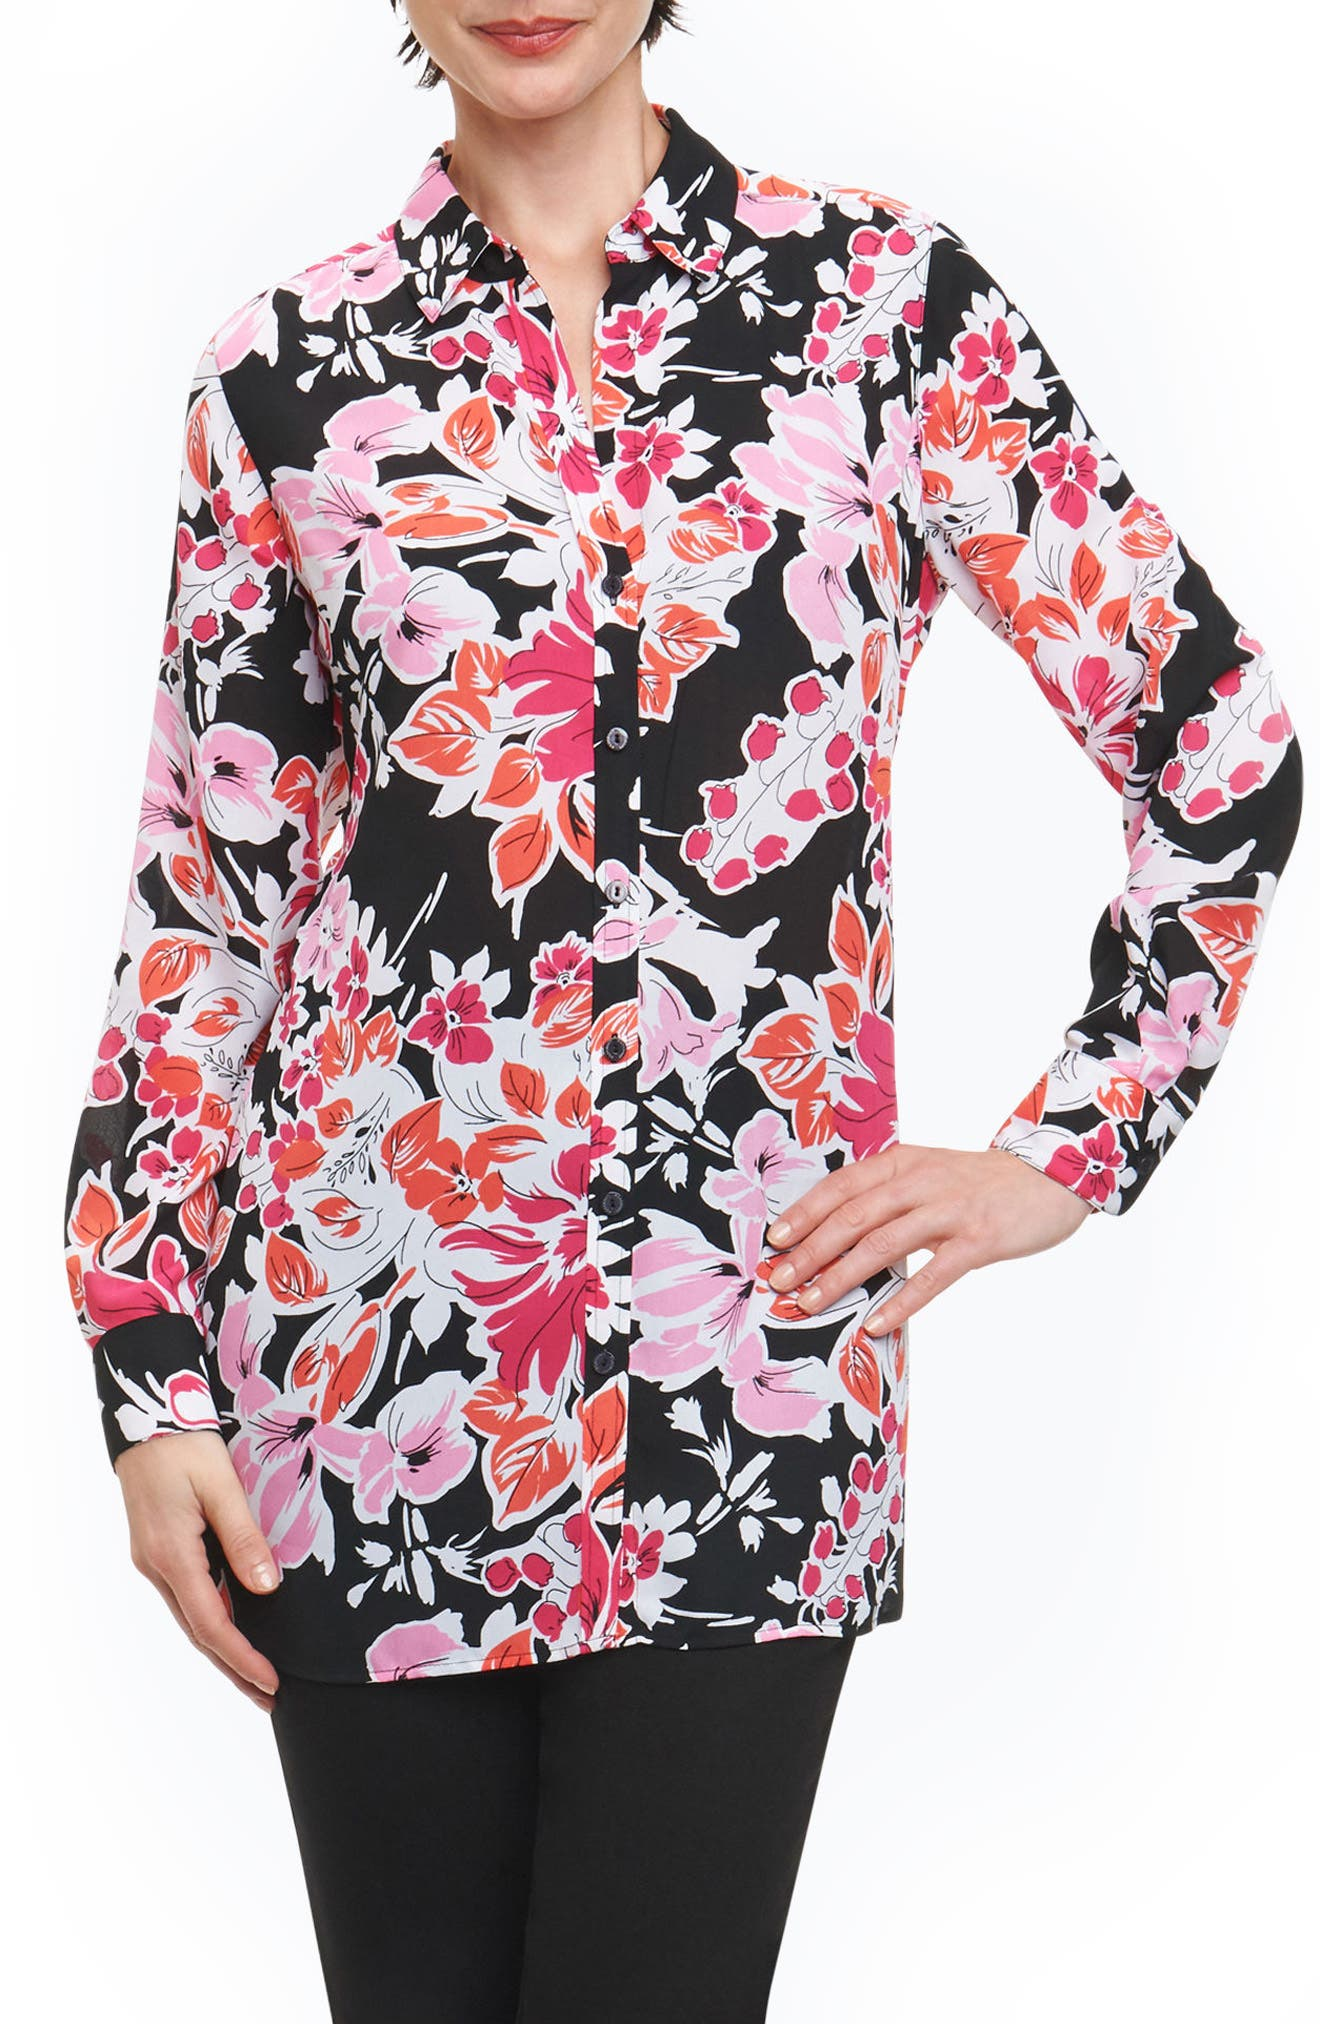 Jade Blooming Floral Tunic Shirt,                             Main thumbnail 1, color,                             Floral Multi